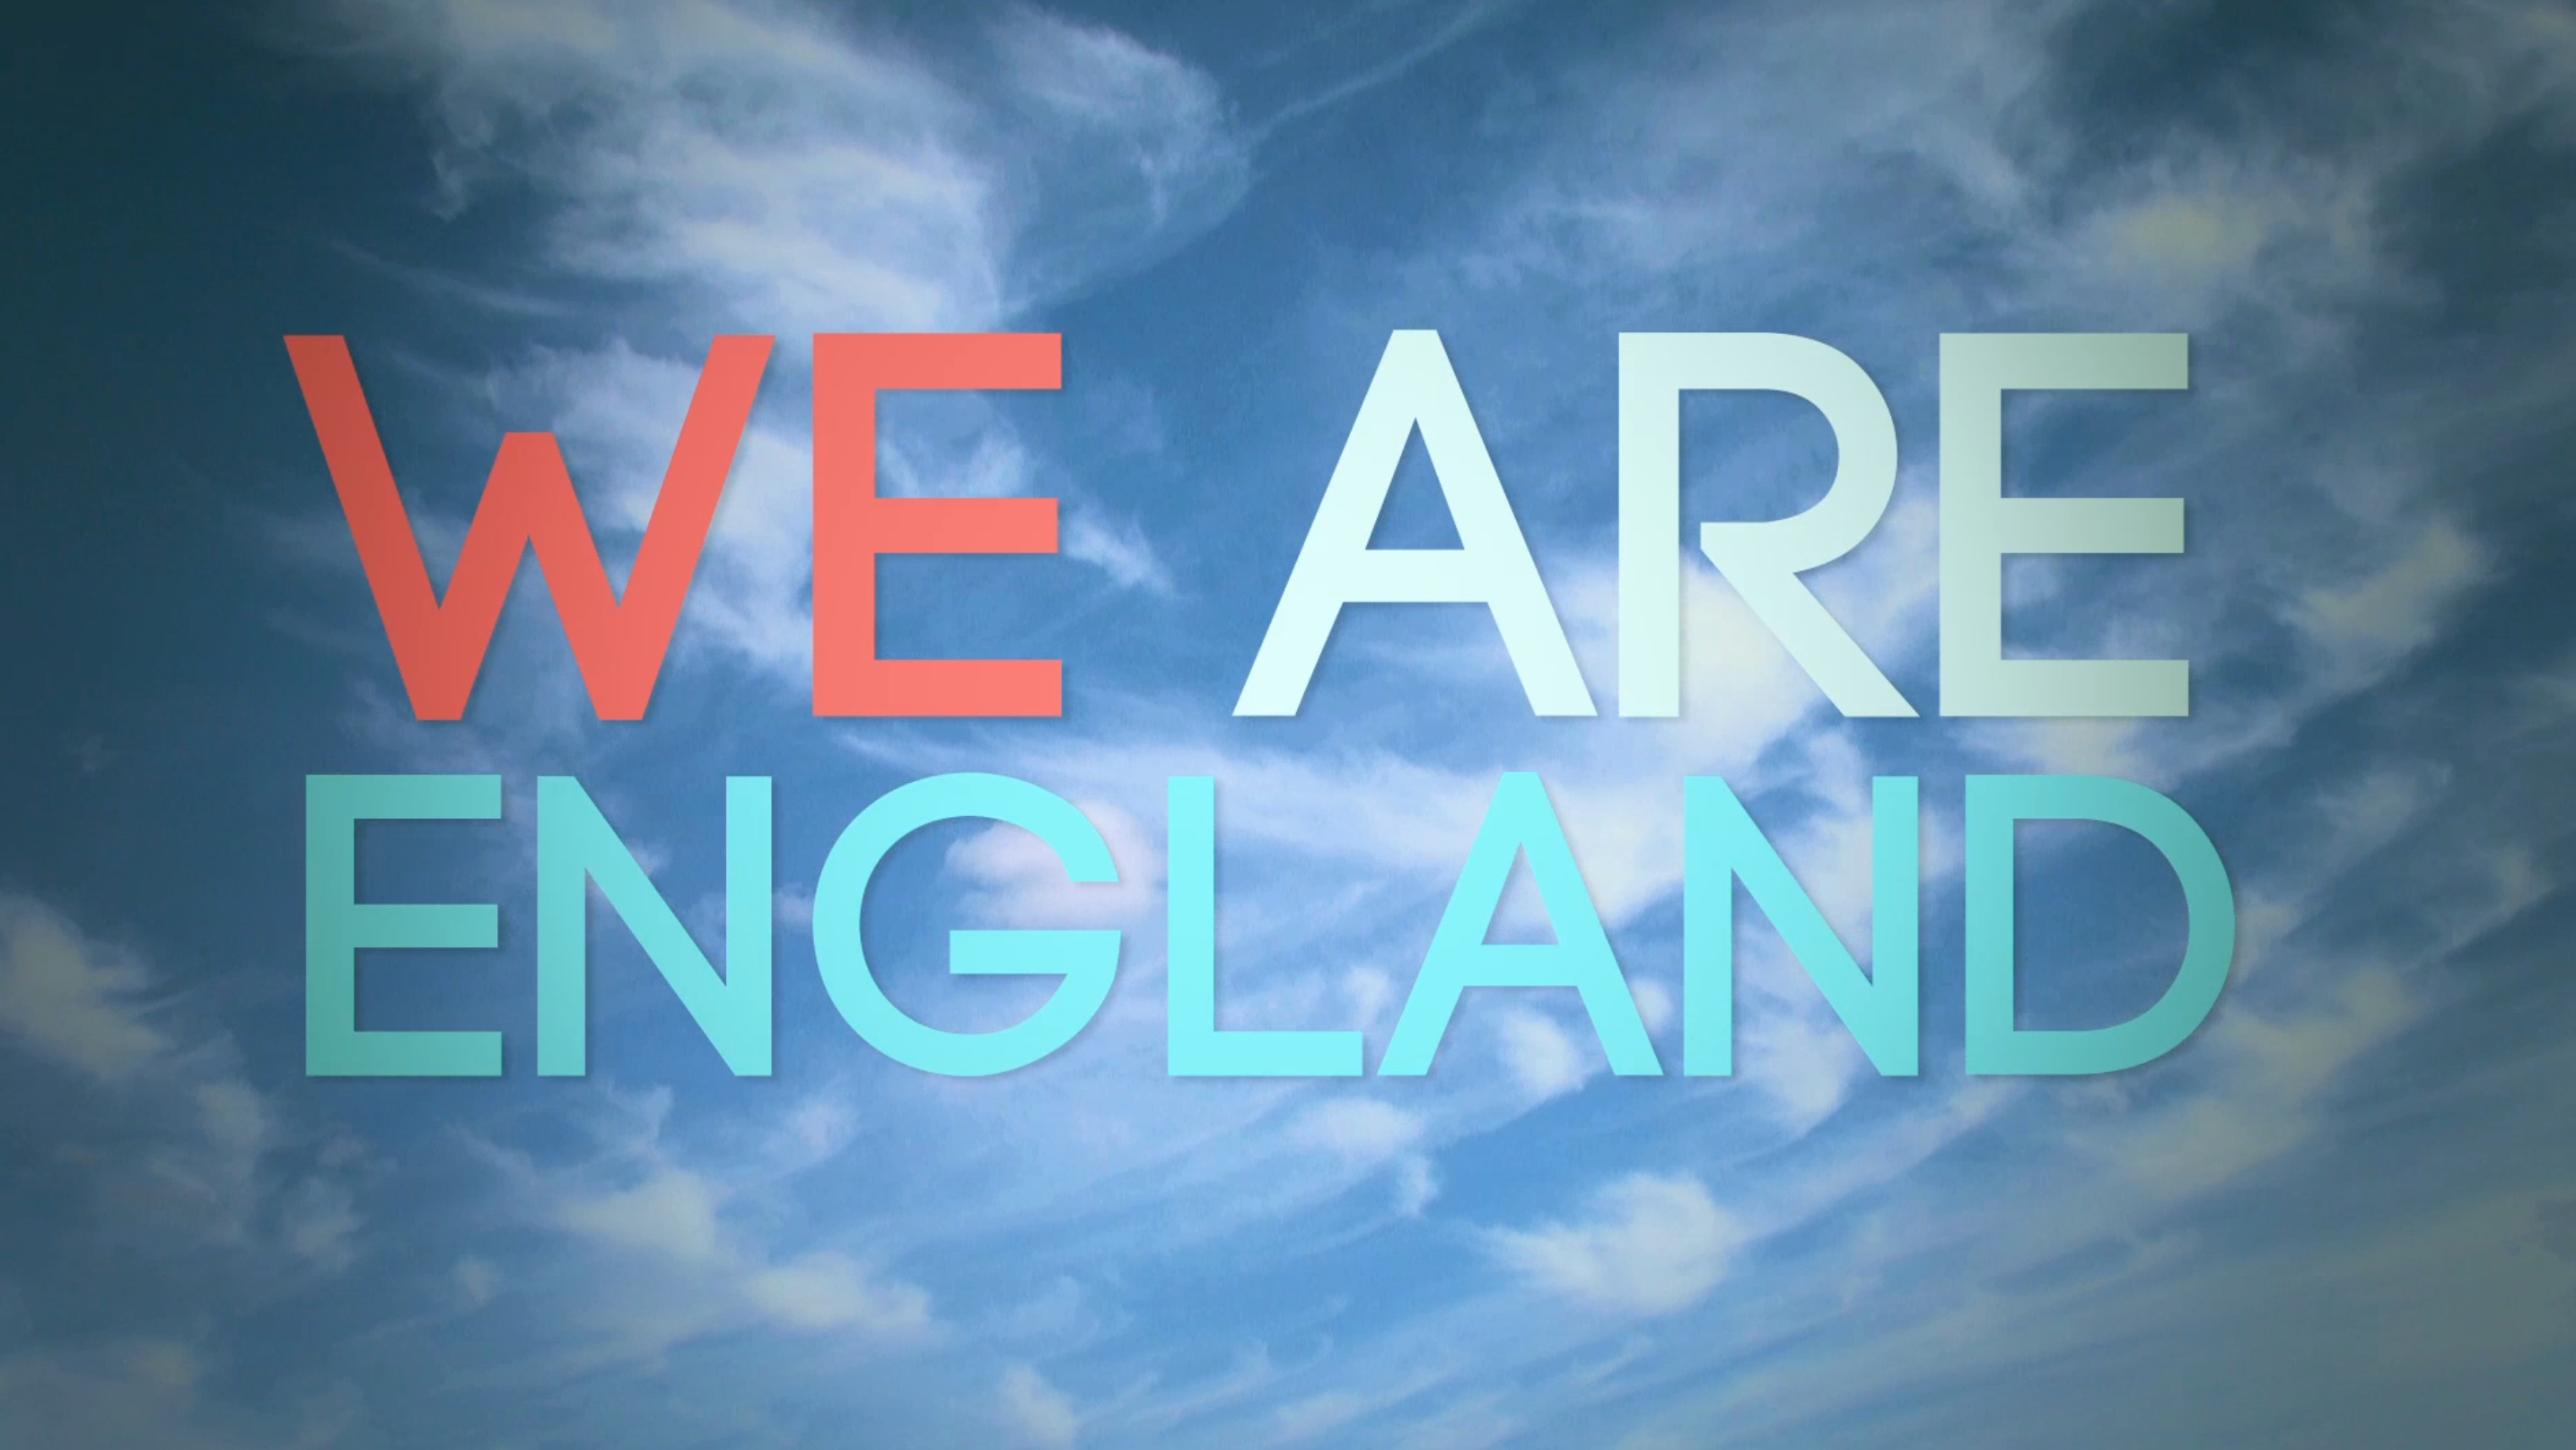 We-are-England